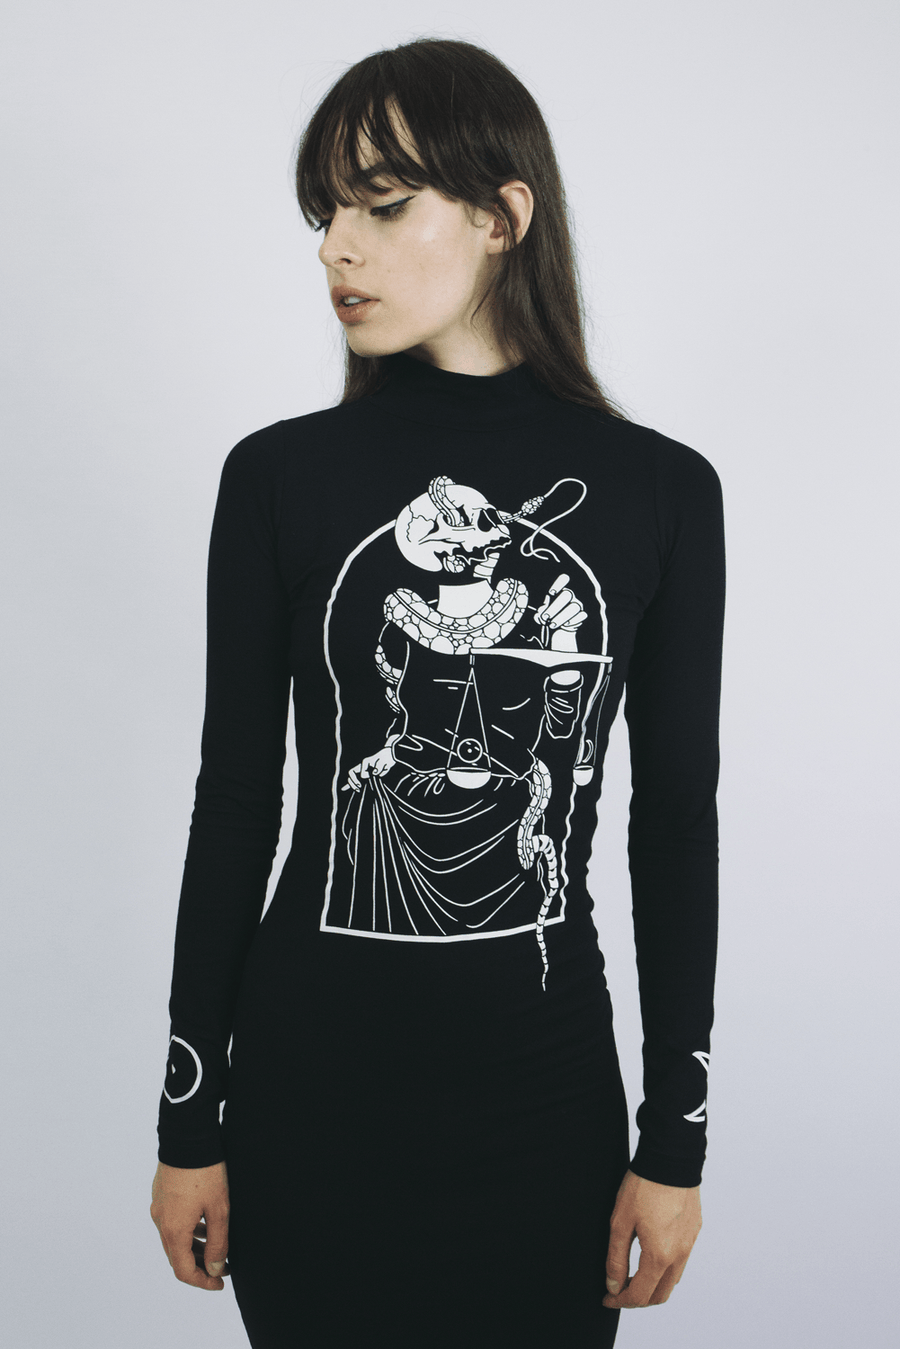 mary wyatt london black high neck midi dress with illustration by death & milk alternative womens fashion